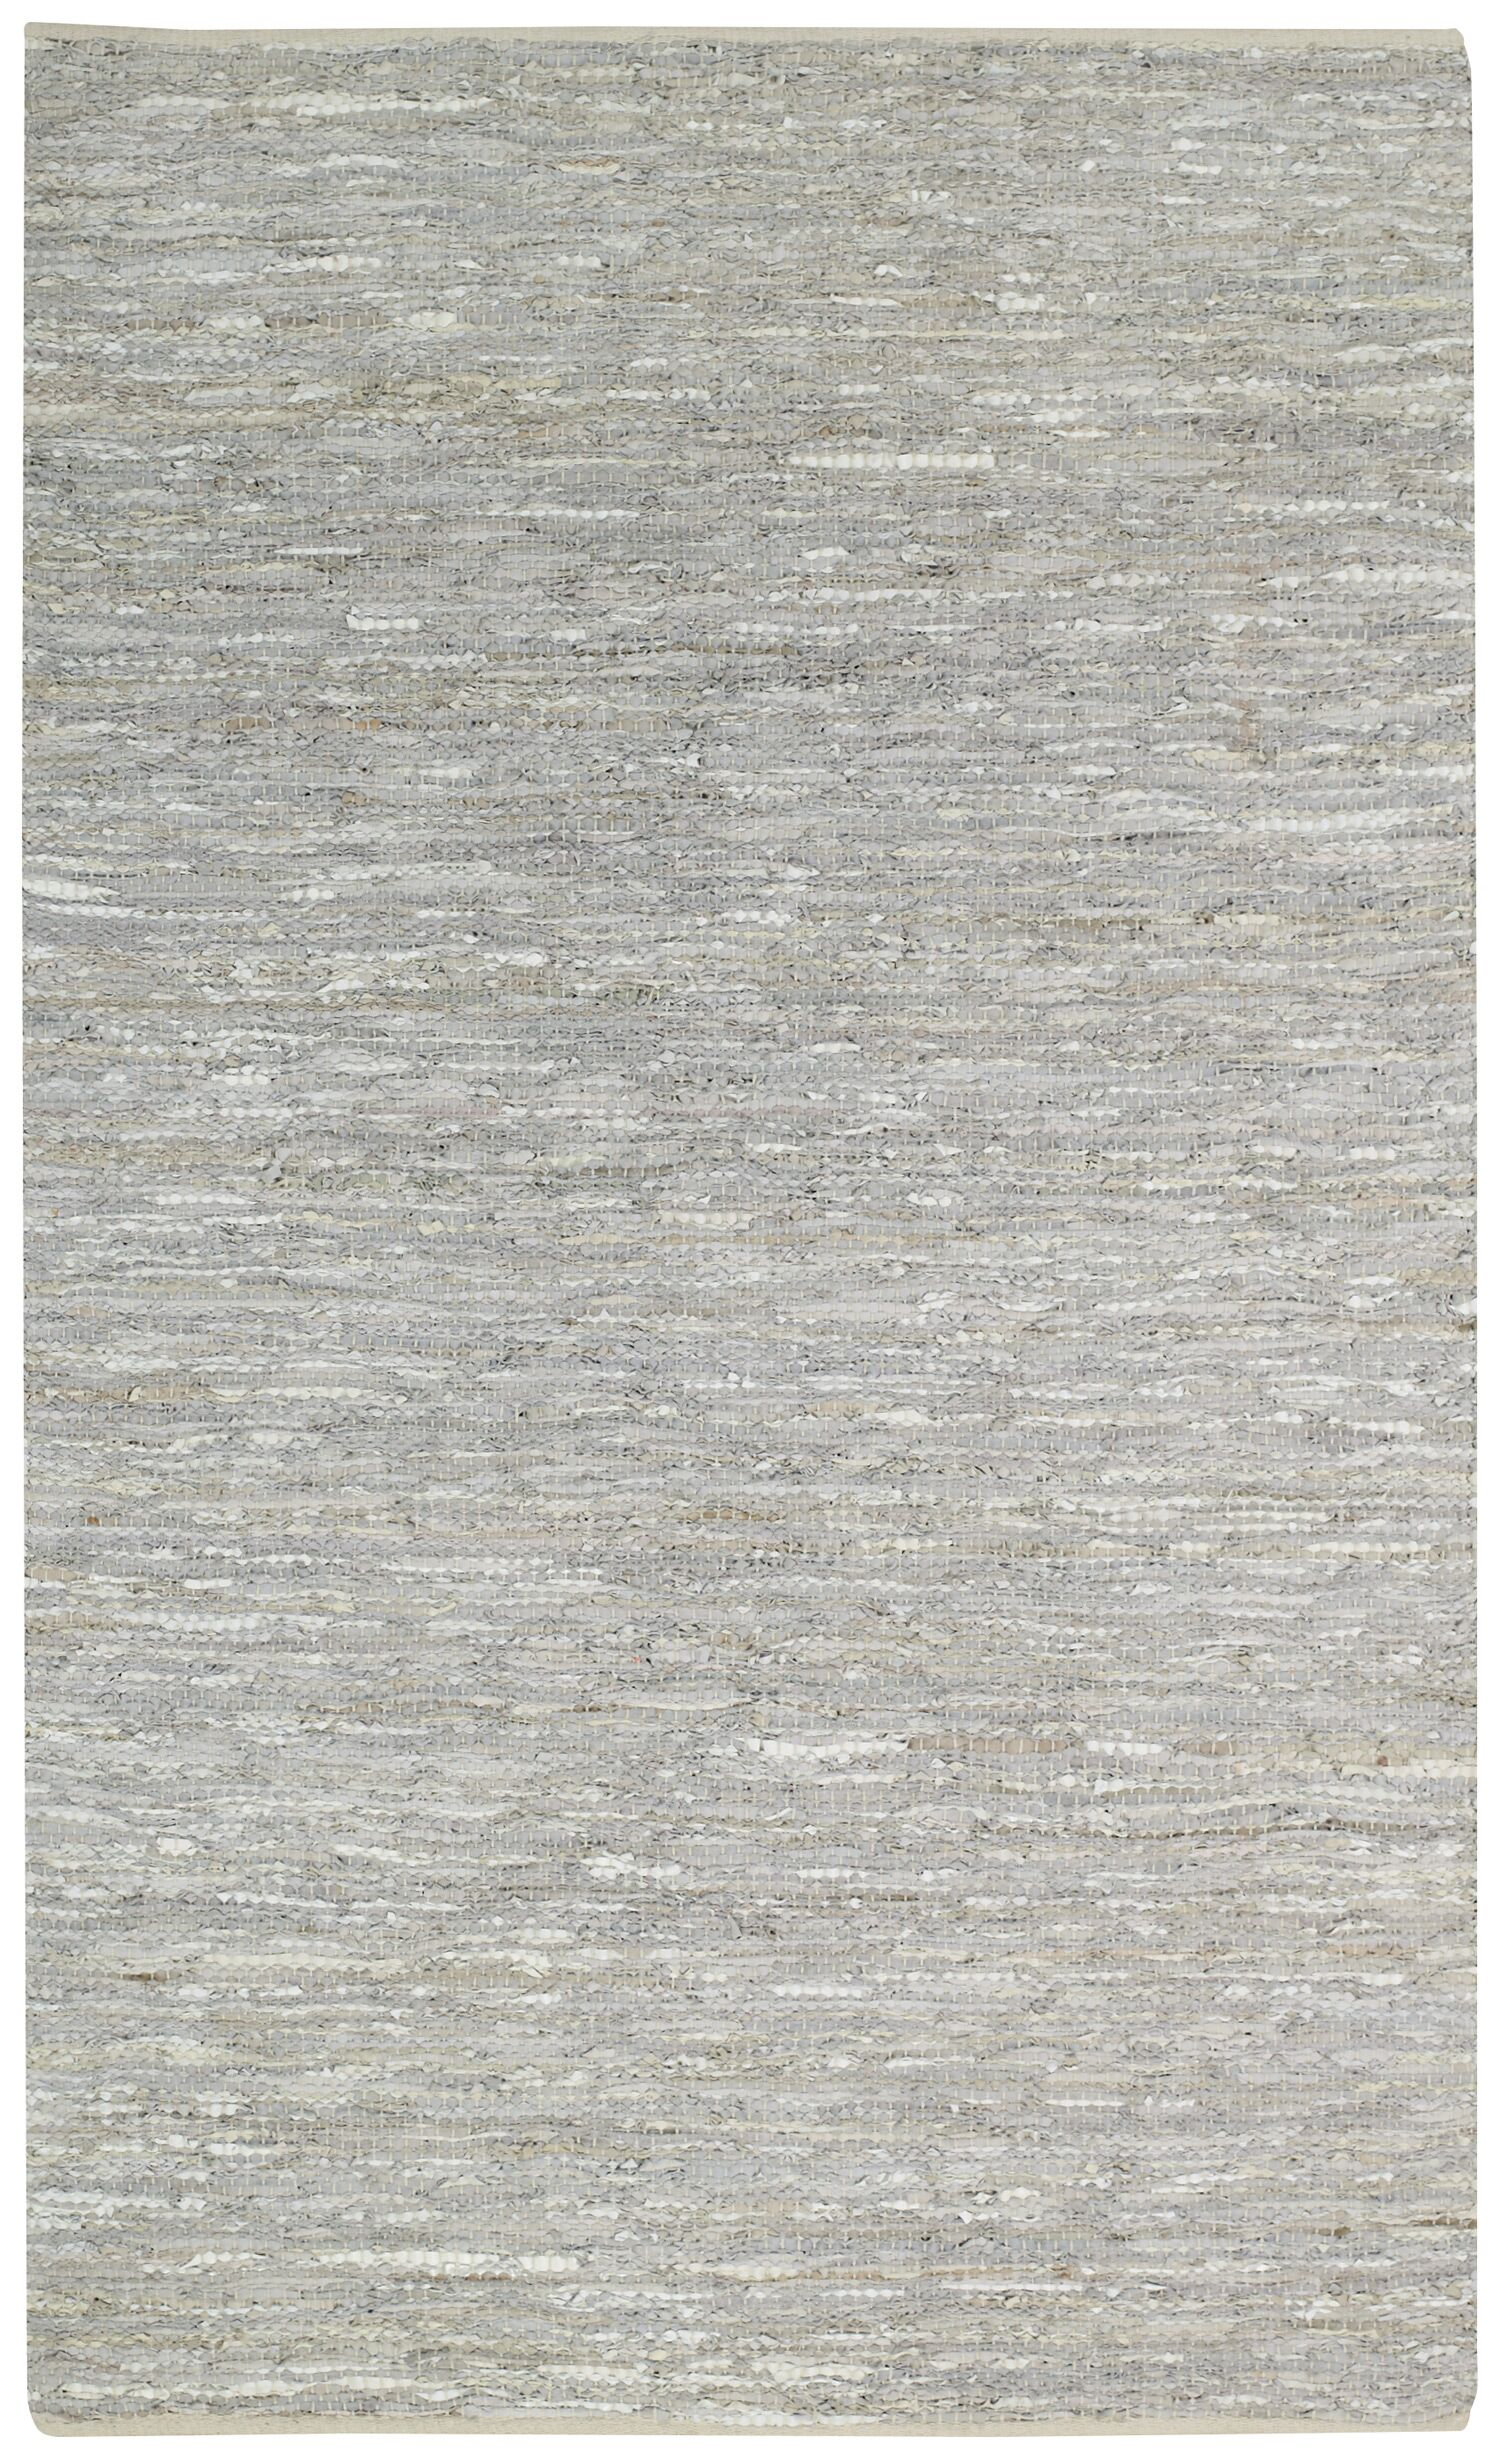 Kandi Grey Area Rug Rug Size: Rectangle 4' x 6'